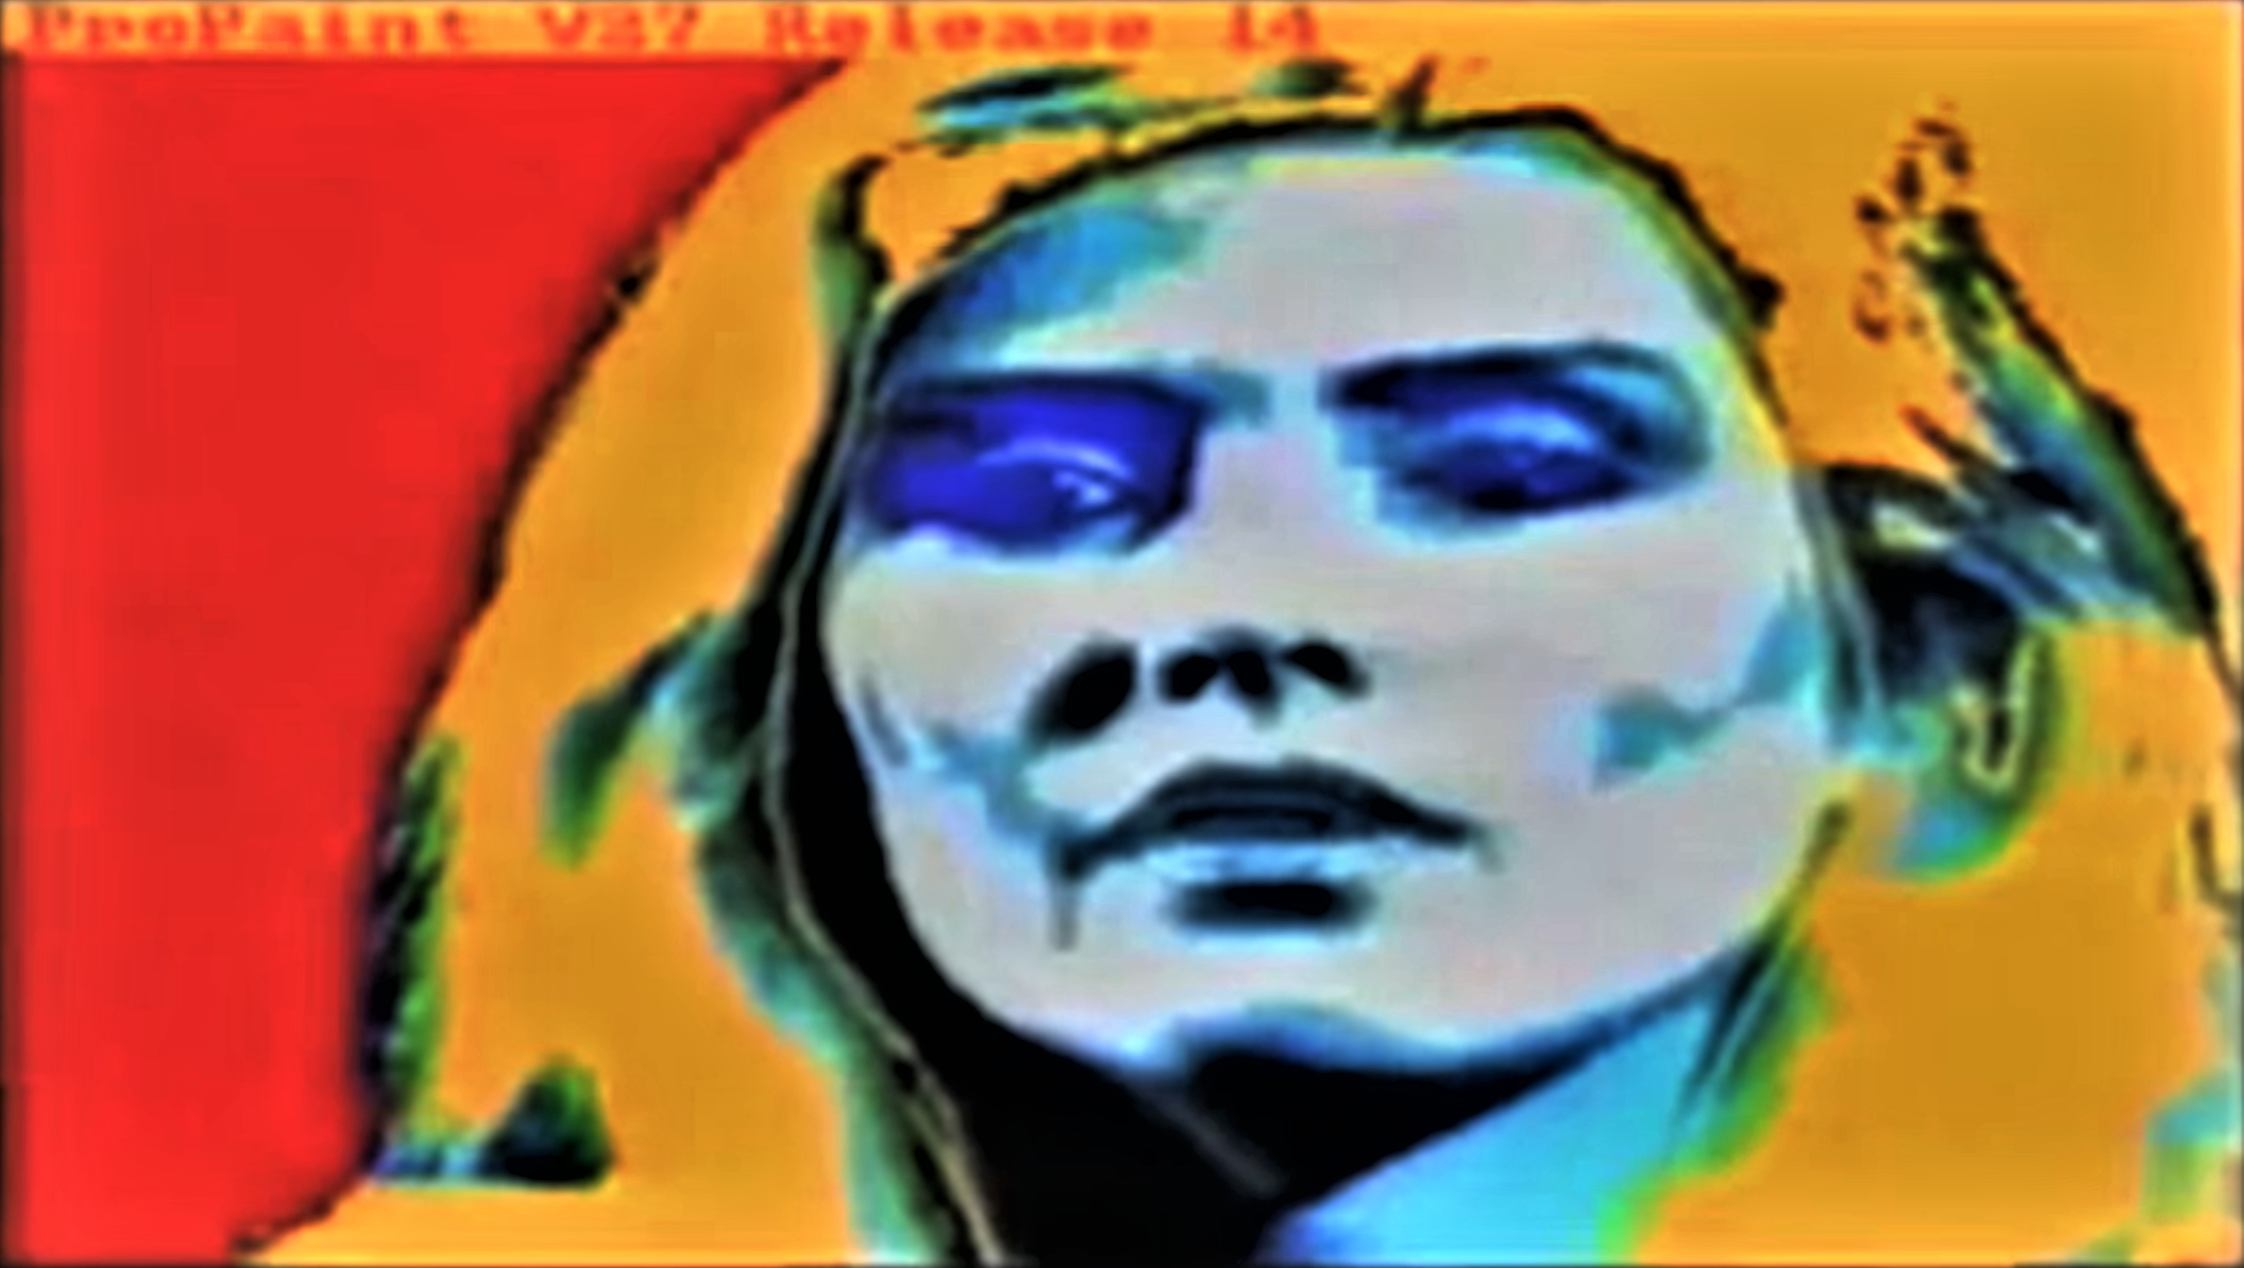 Warhol's Debbie Harry